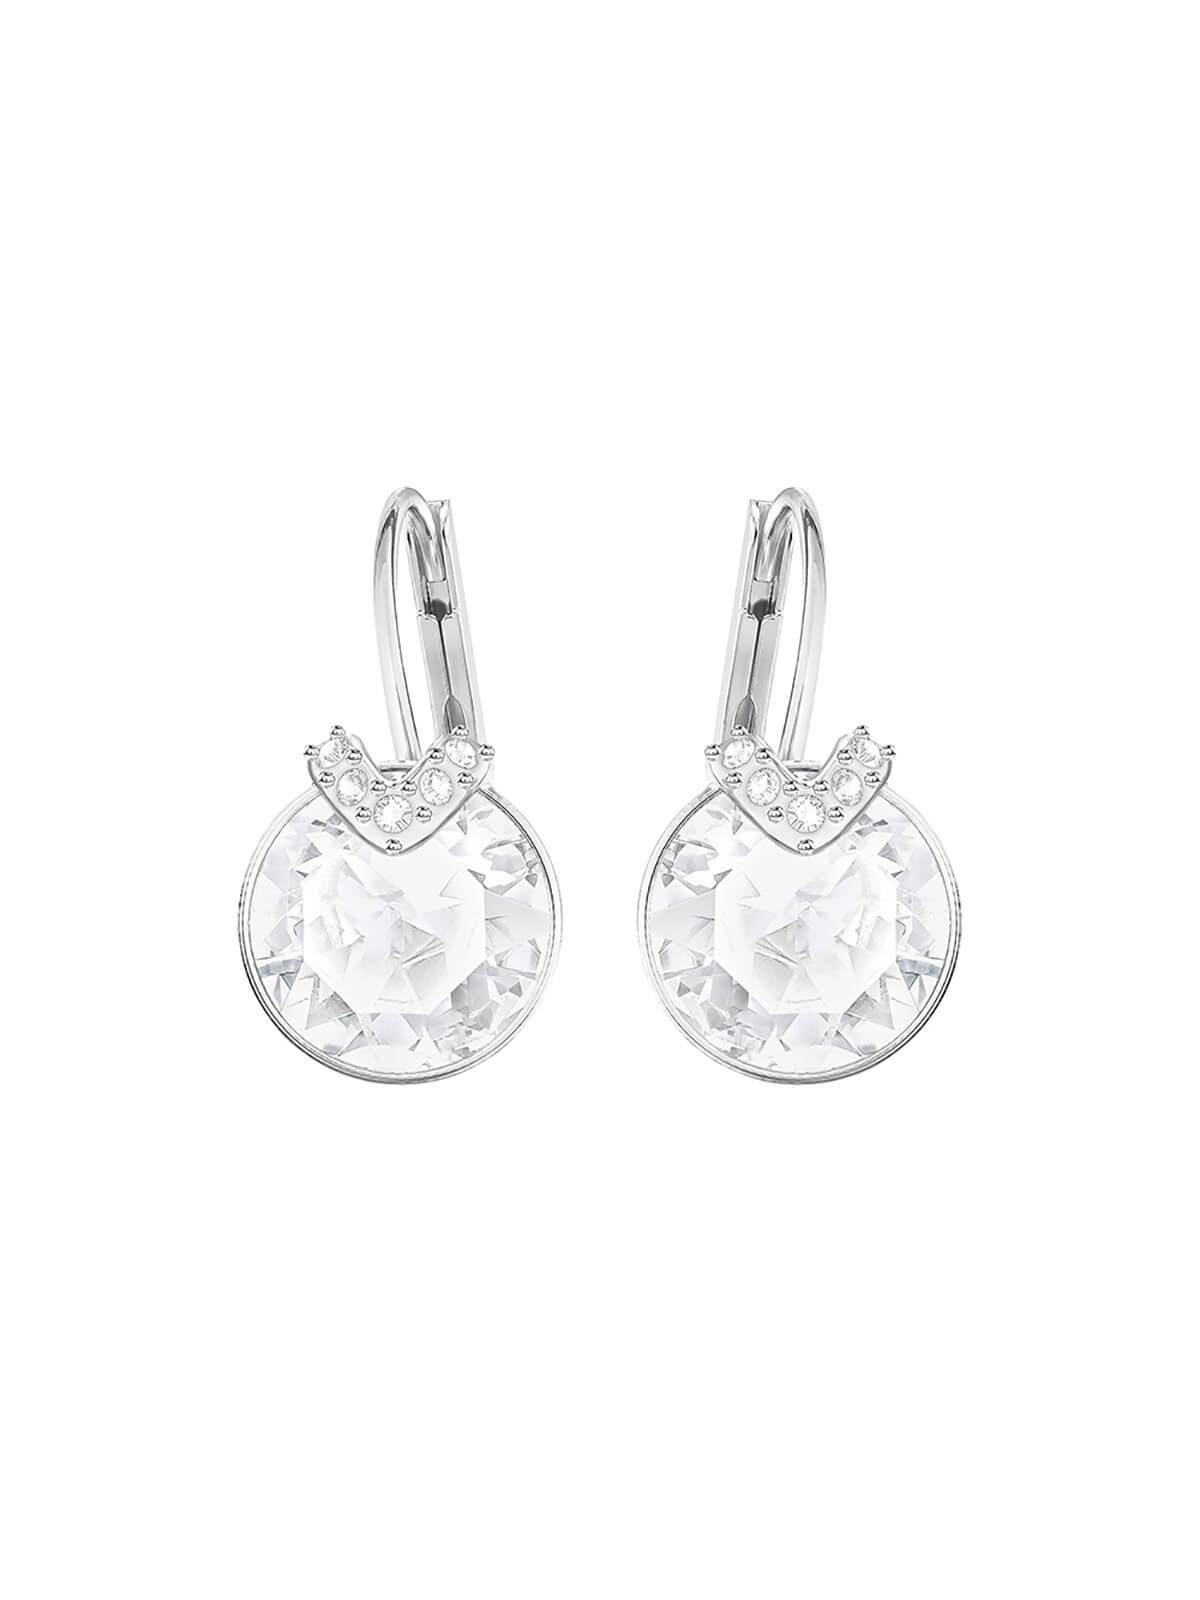 Swarovski Bella V Rhodium Plated and Clear Crystal Earrings 5292855